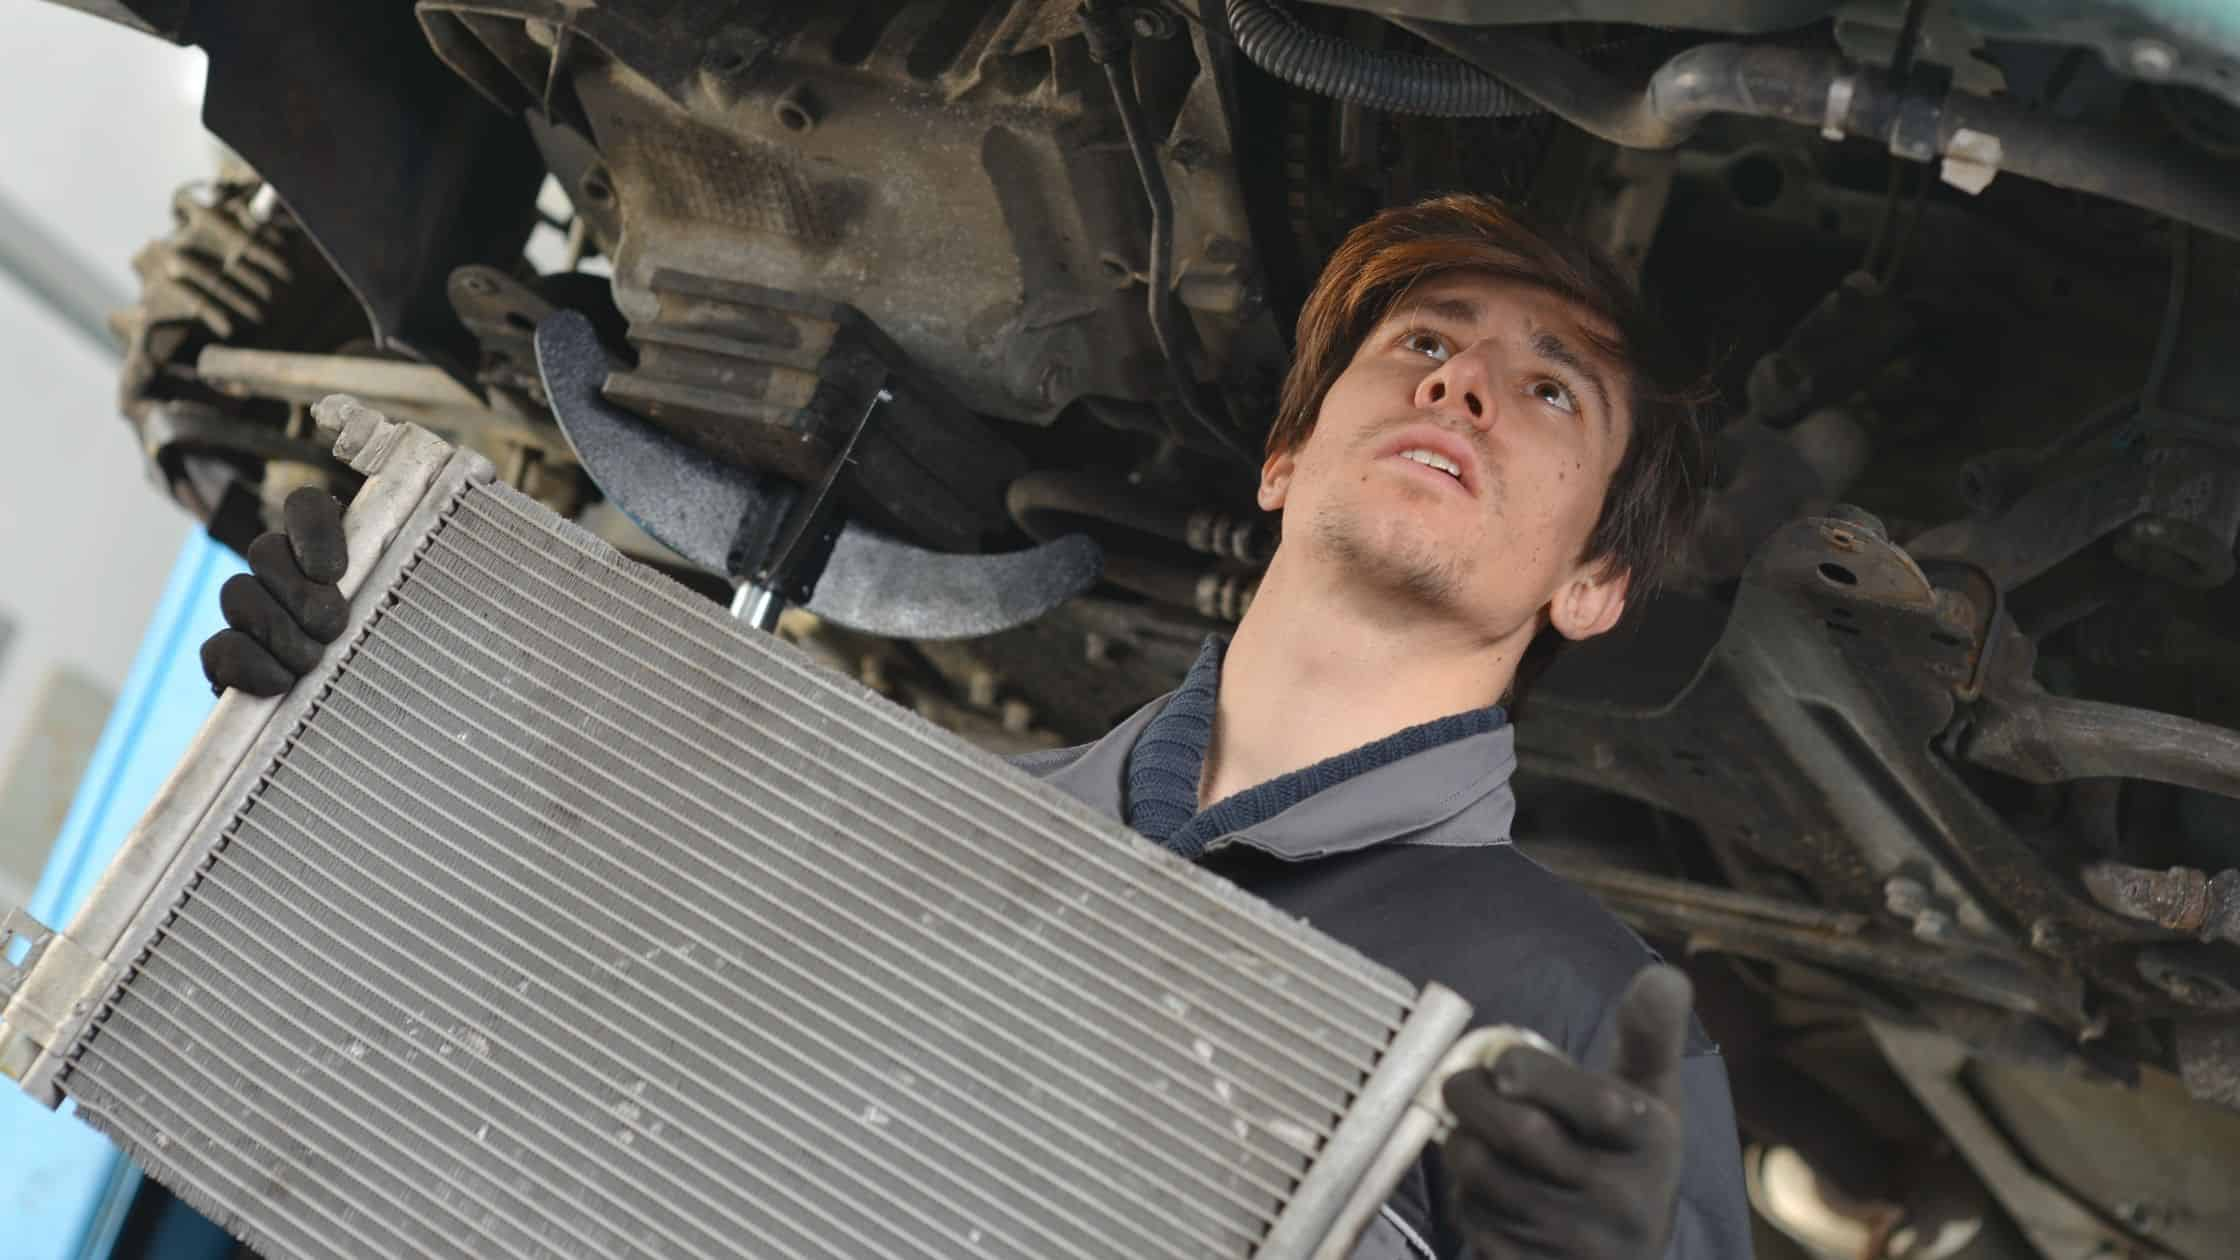 Radiator Fan Replacement Cost